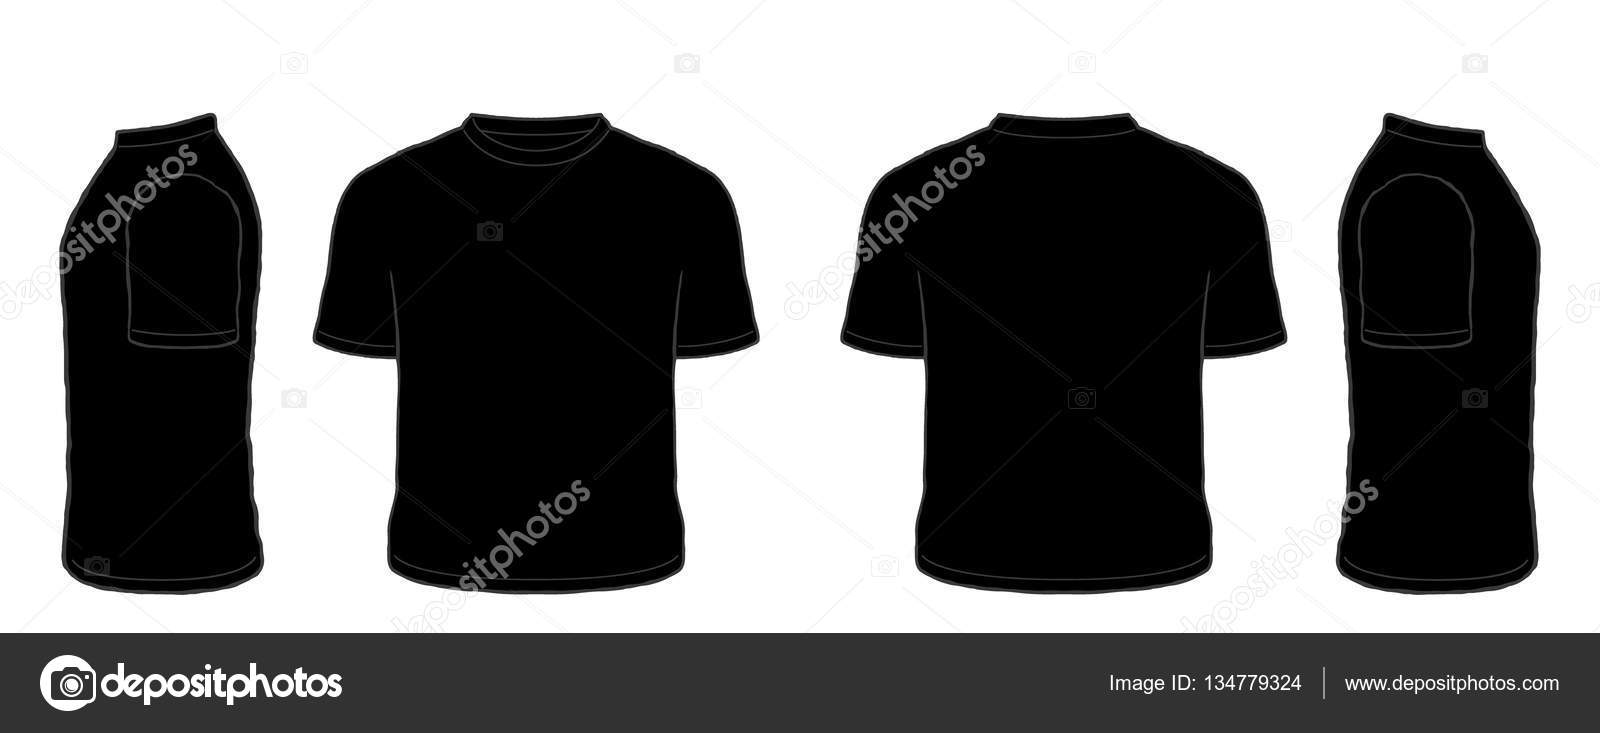 Black t shirt vector - Black Short Sleeve Tshirt Vector Set Front Side Back Views Stock Illustration